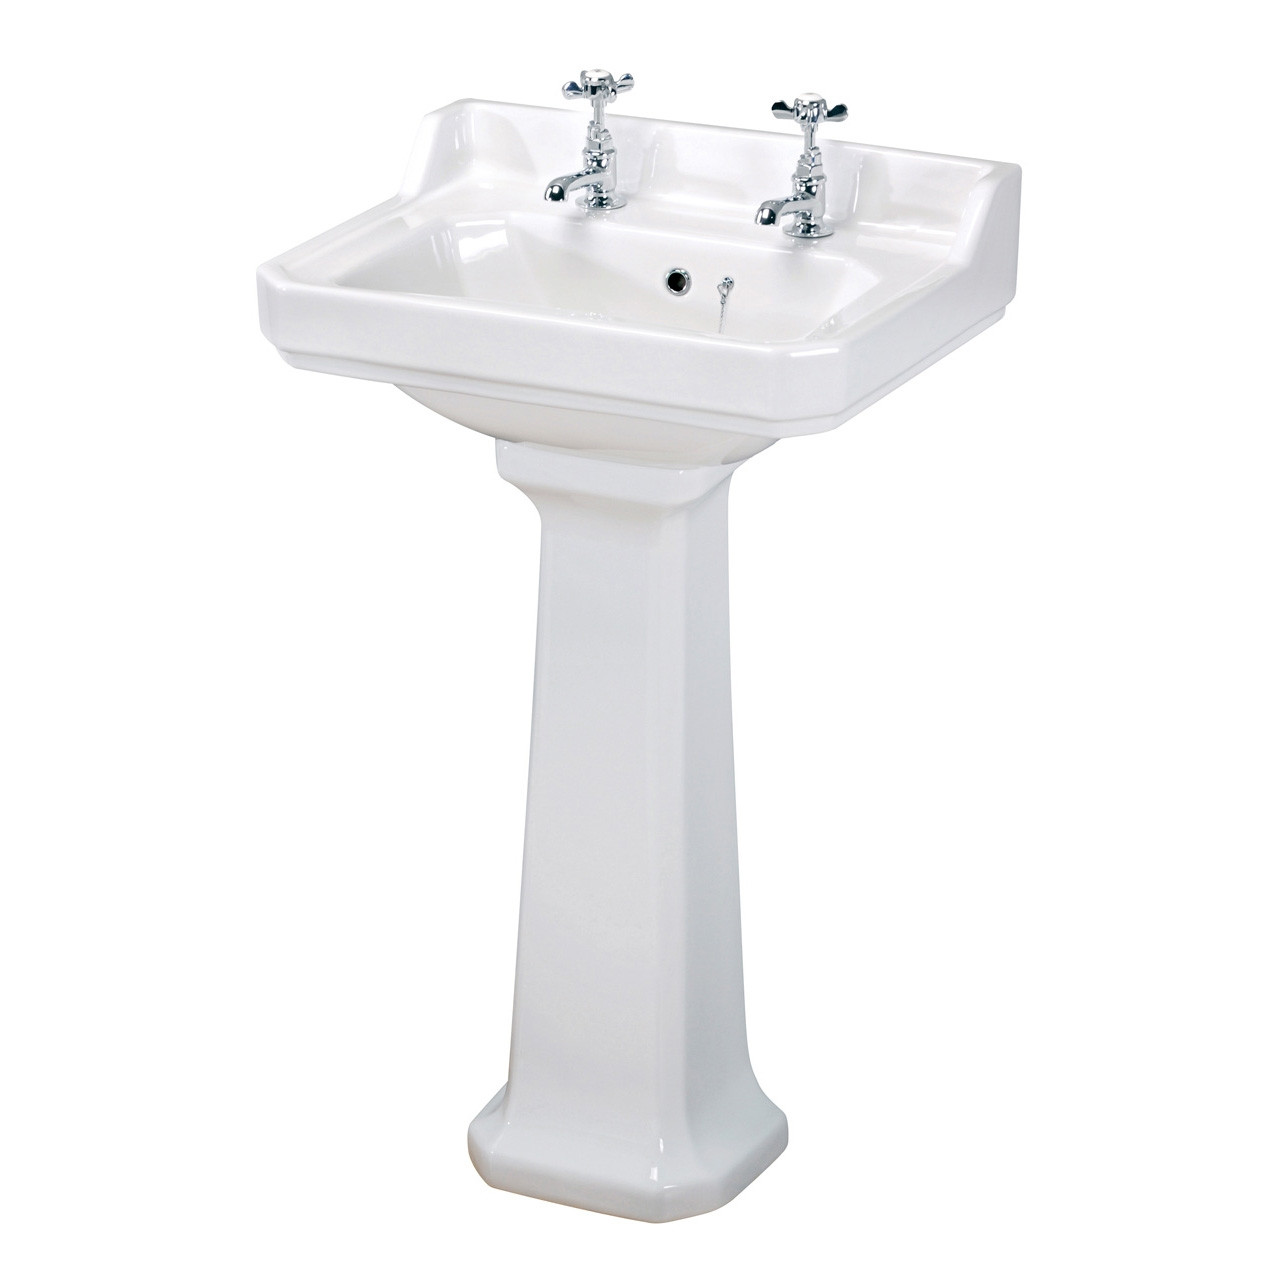 Old London Richmond 600mm Basin with 2 Tap Holes and Pedestal - LDC882